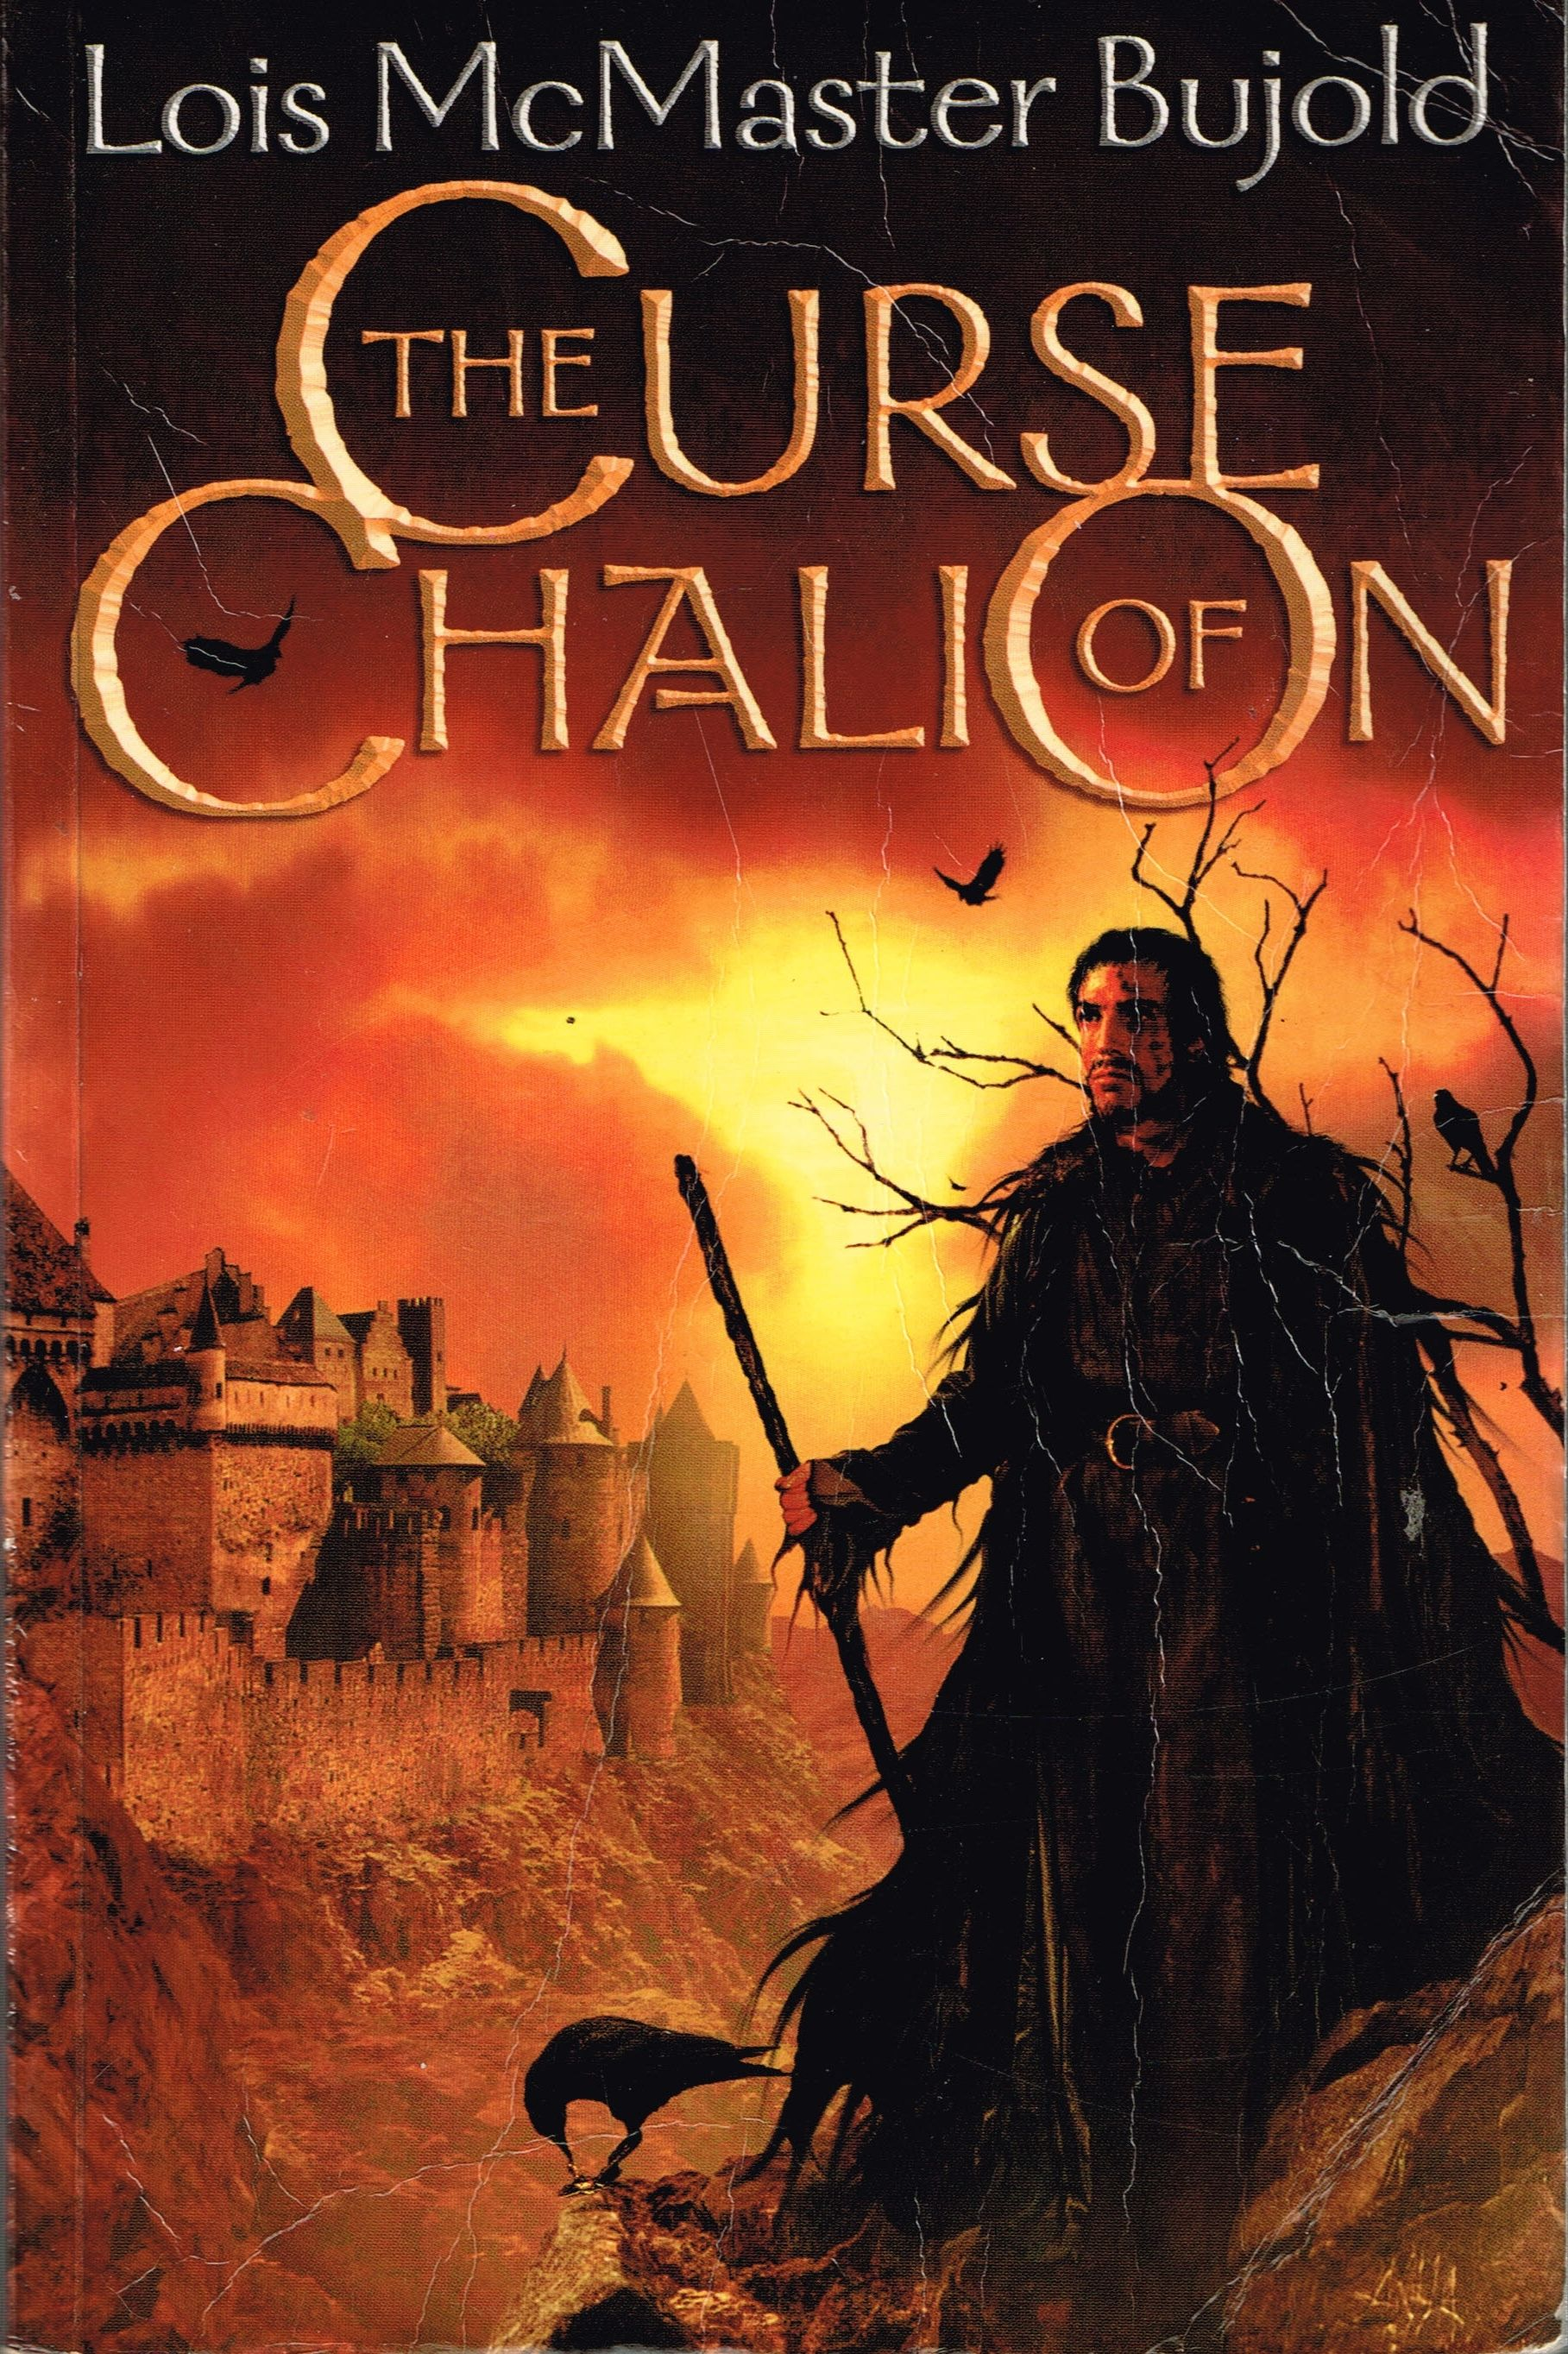 The Curse Of Chalion : curse, chalion, Curse, Chalion, (2001), McMaster, Bujold., Excellent, Gently, Witty, Protagonist., Finished, Books,, Favorite, Reading, Recommendations